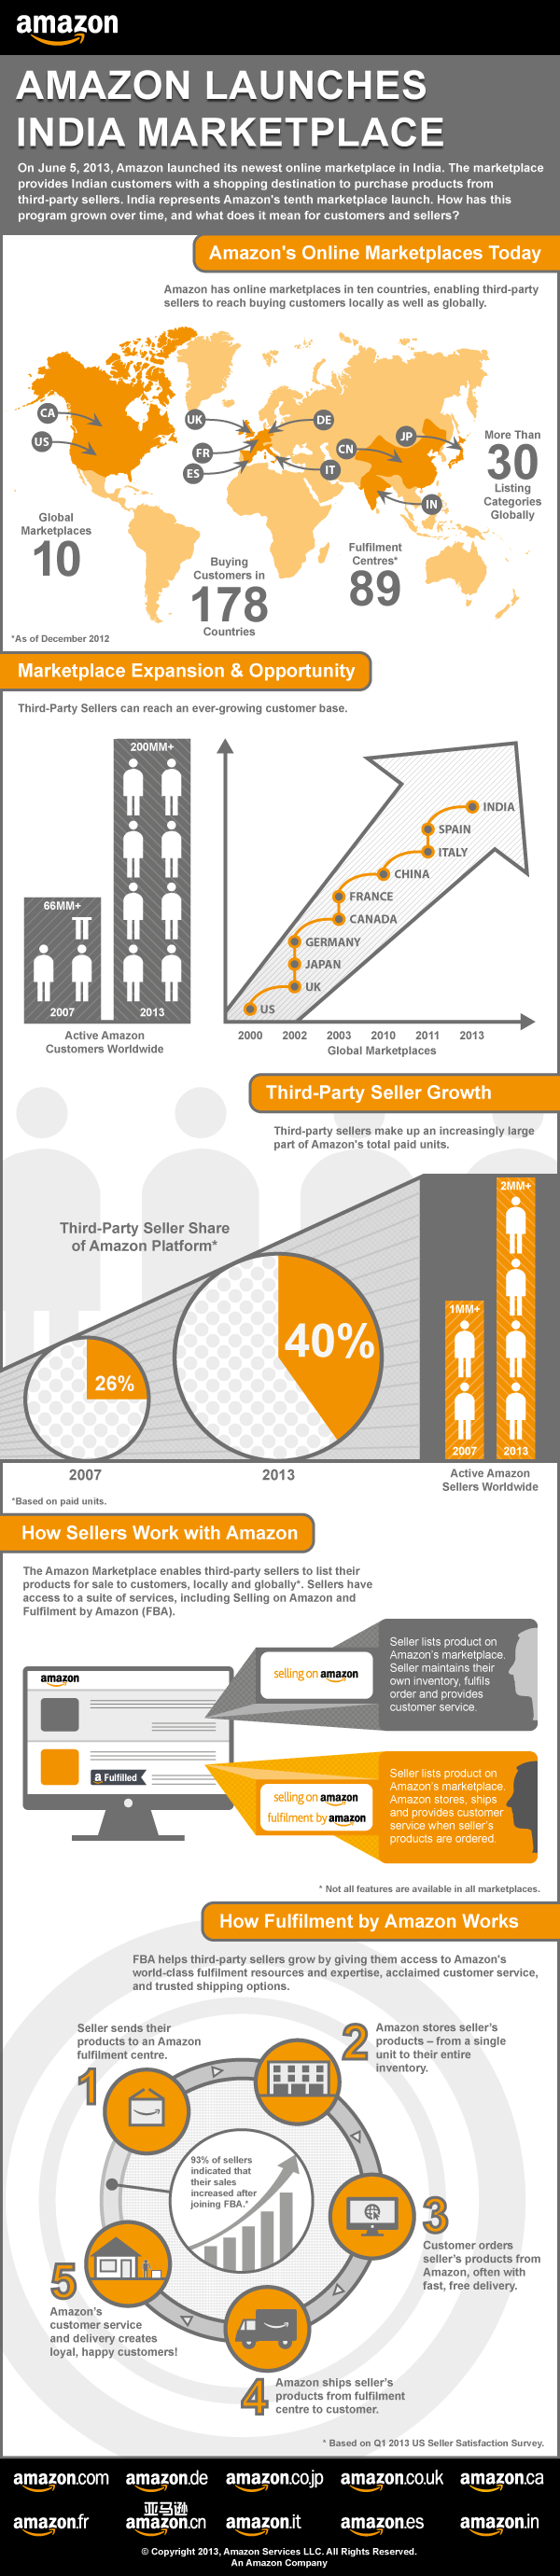 Amazon India Launch Press Release - 5 June 2013